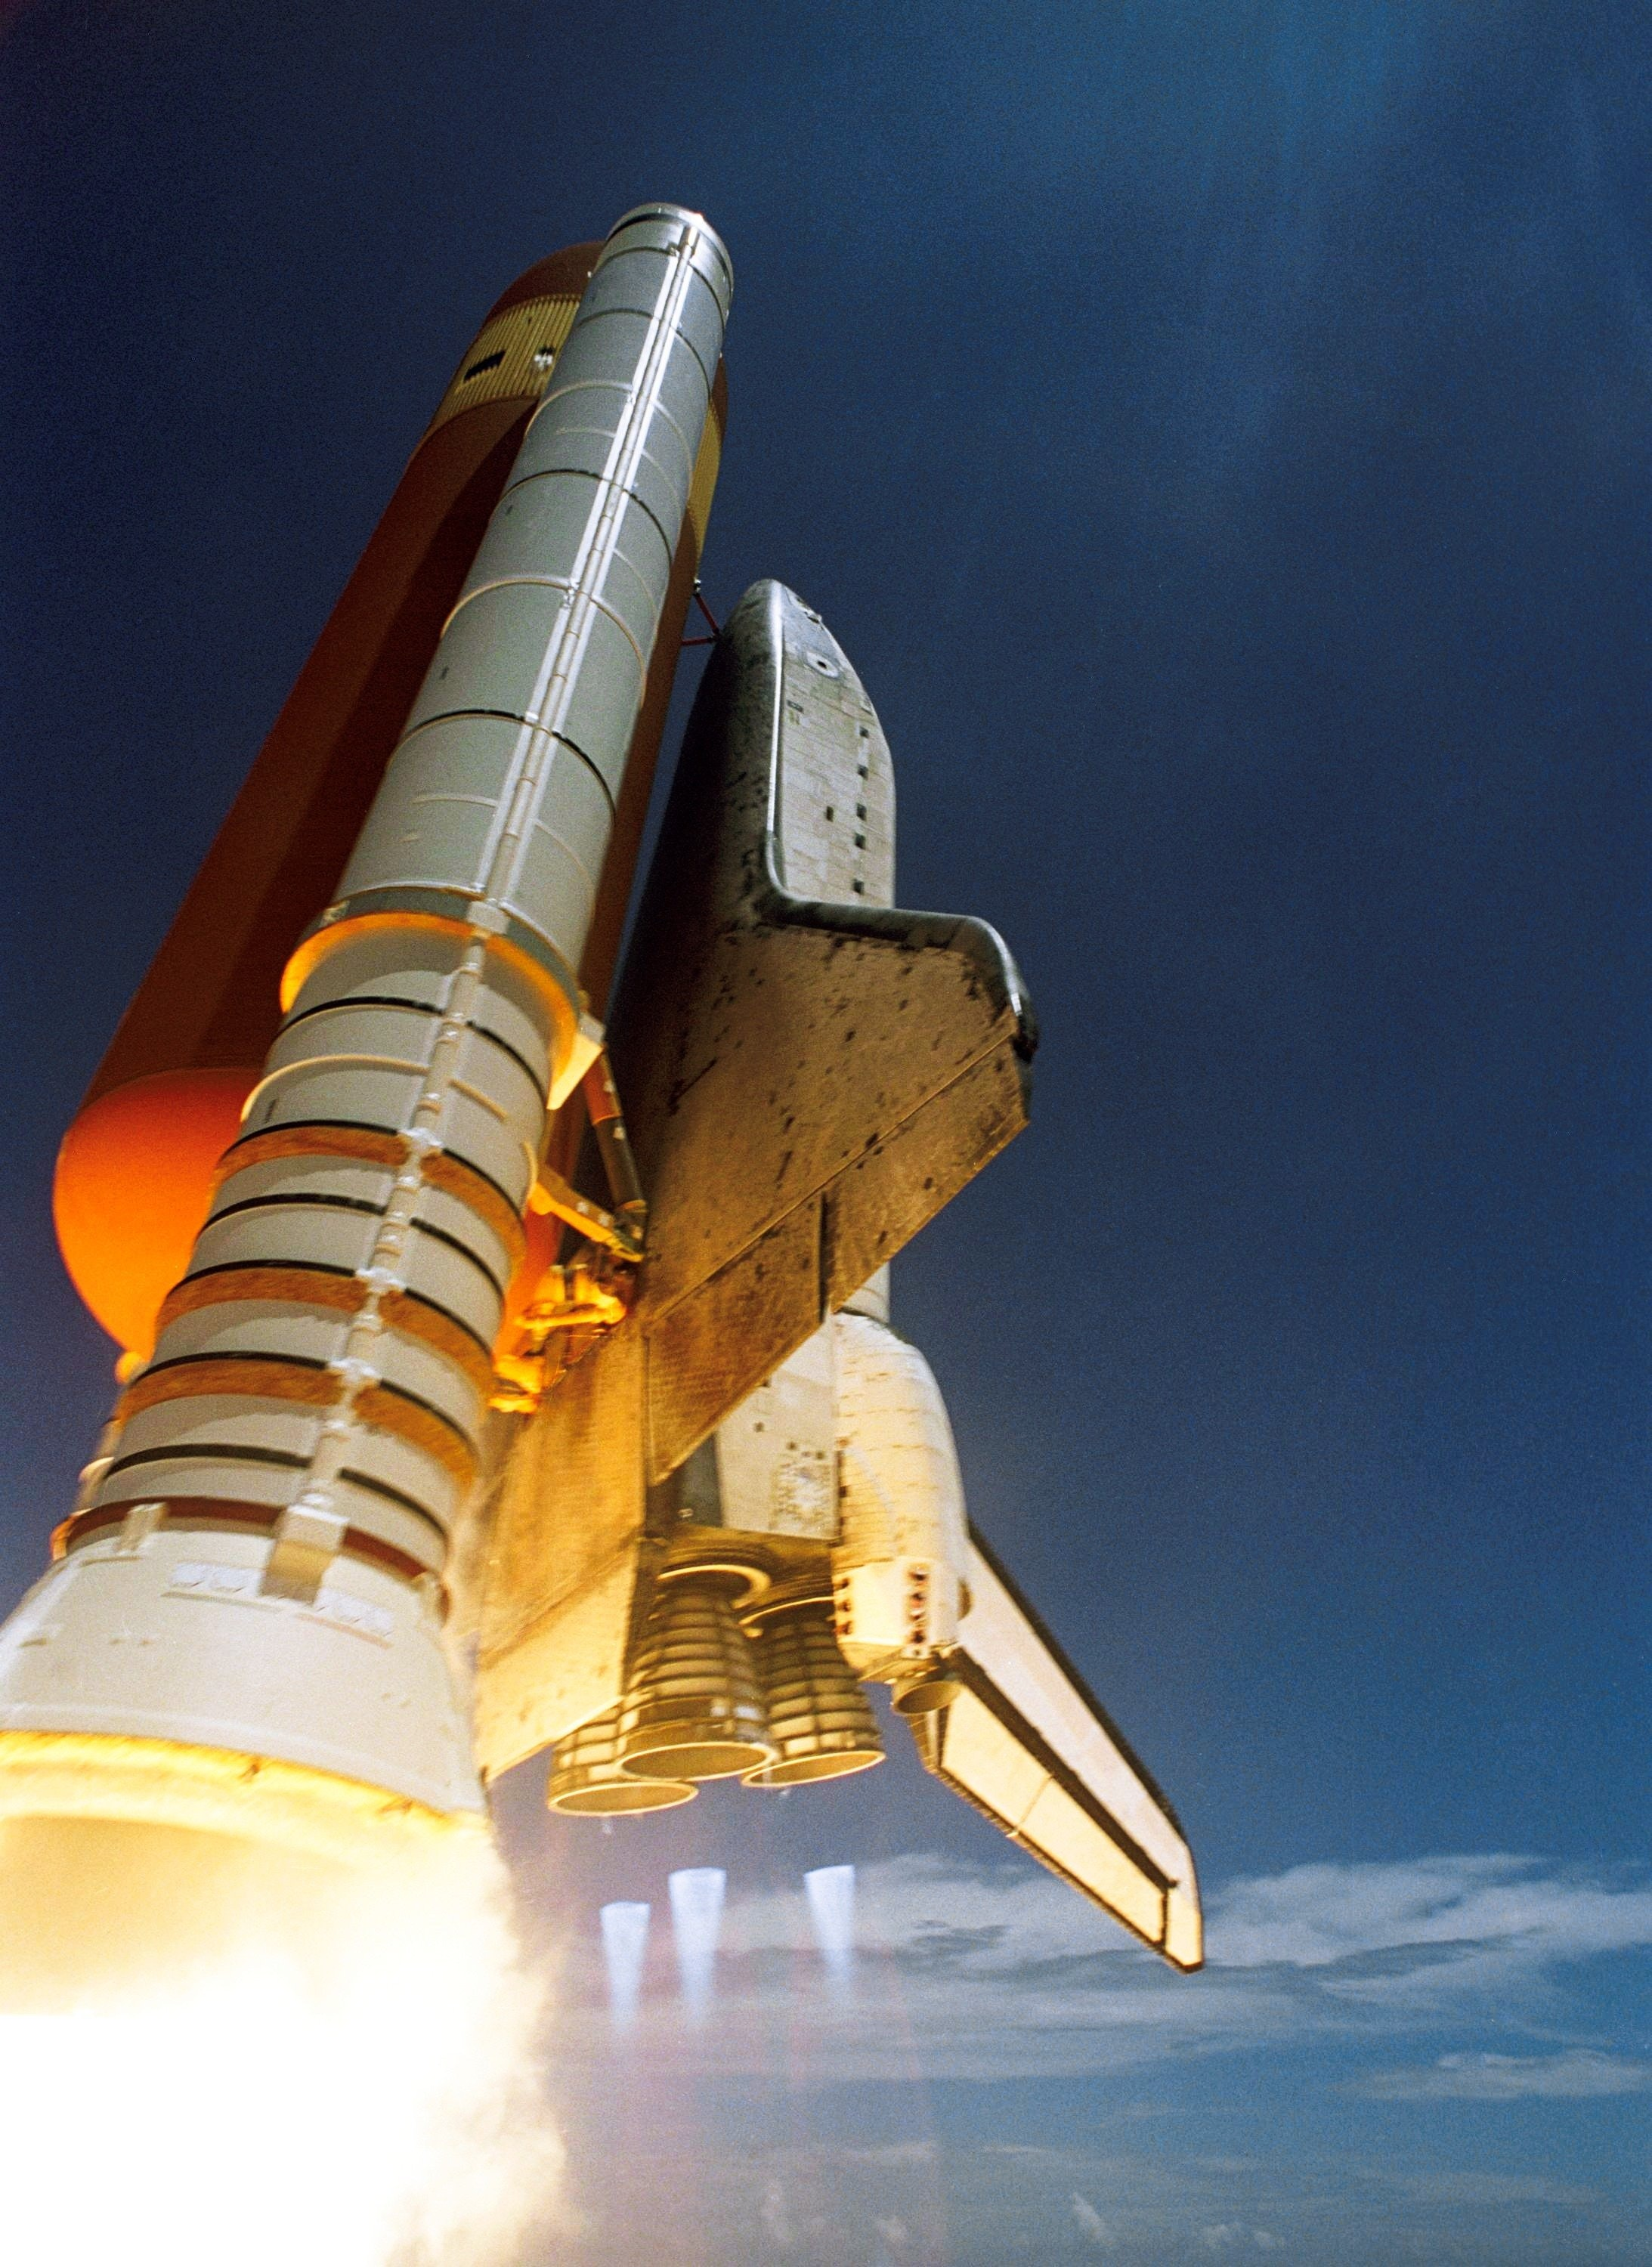 500 Great Space Shuttle Photos Pexels Free Stock